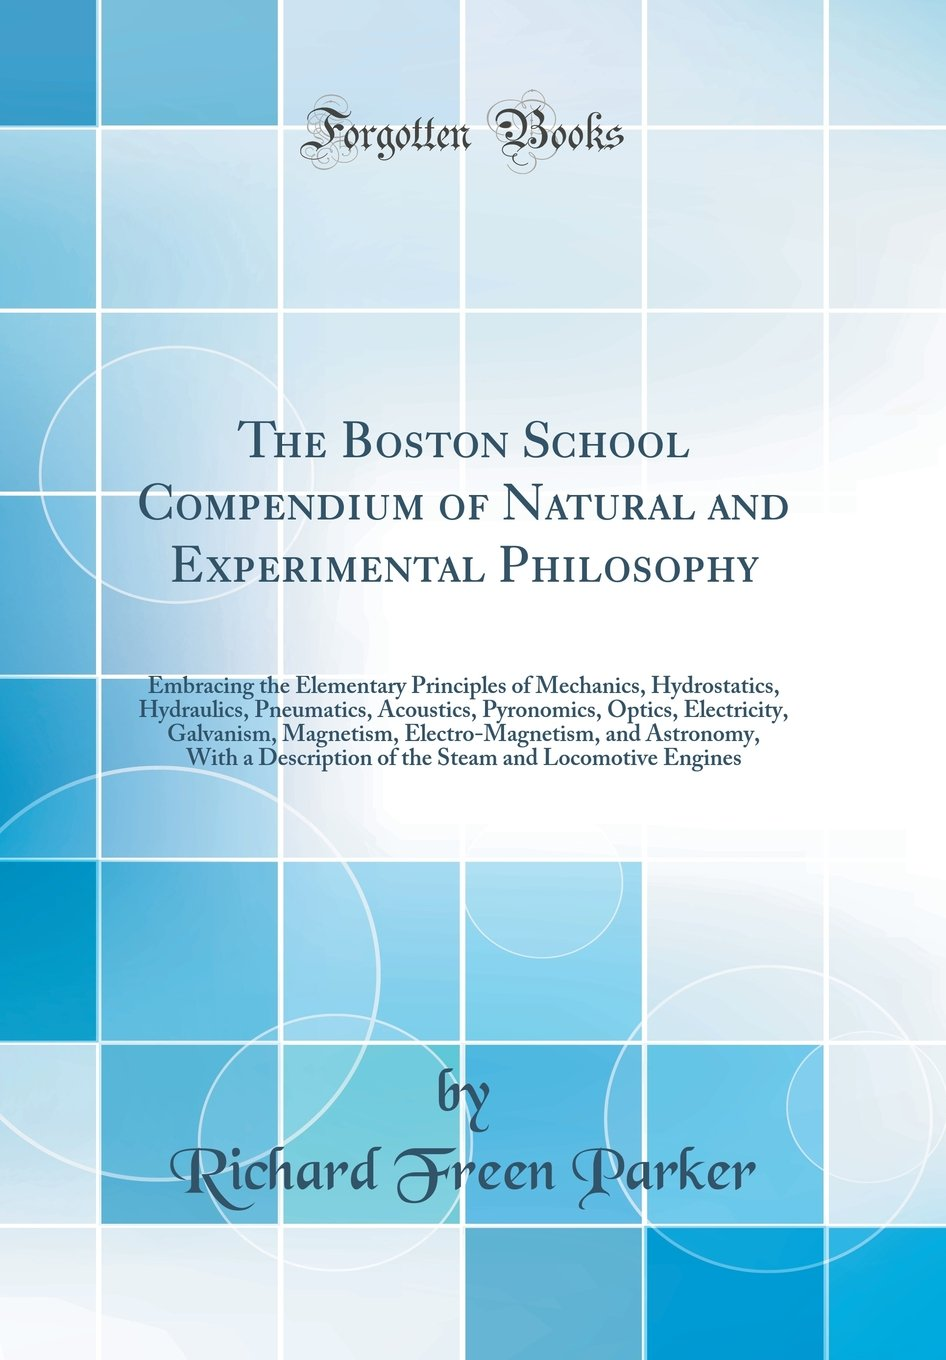 Download The Boston School Compendium of Natural and Experimental Philosophy: Embracing the Elementary Principles of Mechanics, Hydrostatics, Hydraulics, ... Magnetism, Electro-Magnetism, and Astronomy pdf epub